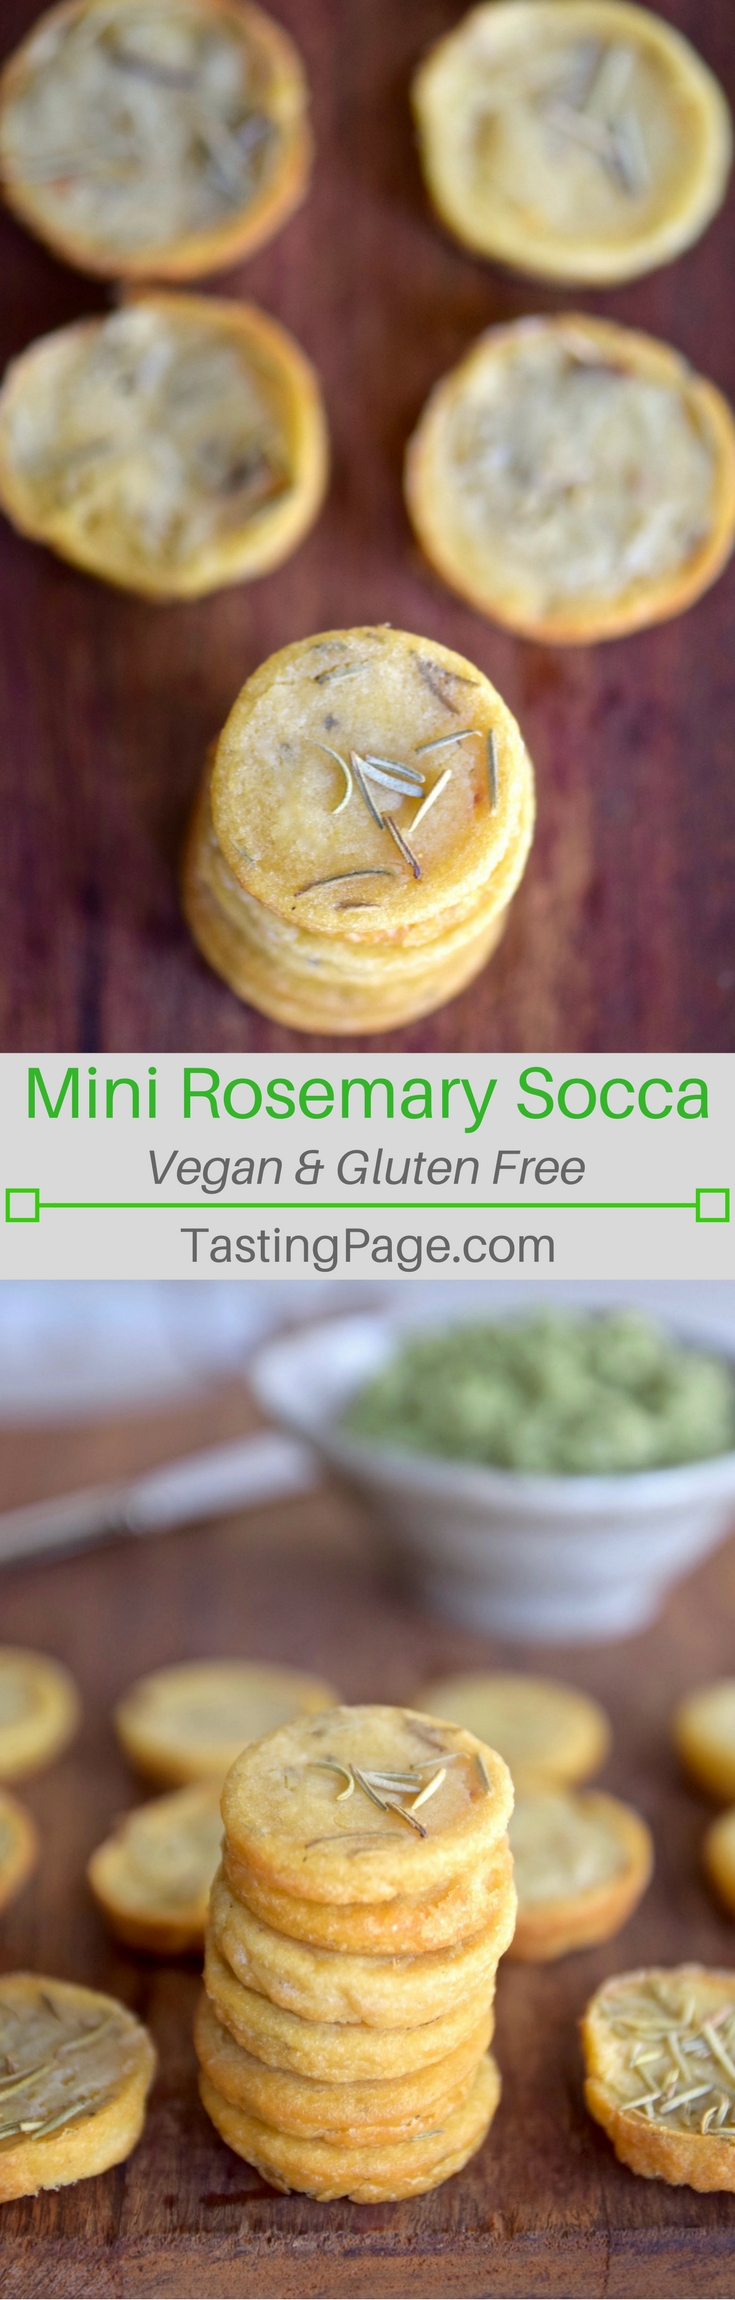 Gluten Free Vegan Mini Rosemary Socca Rounds - healthy snack option or use in place of a crostini at your next party | TastingPage.com